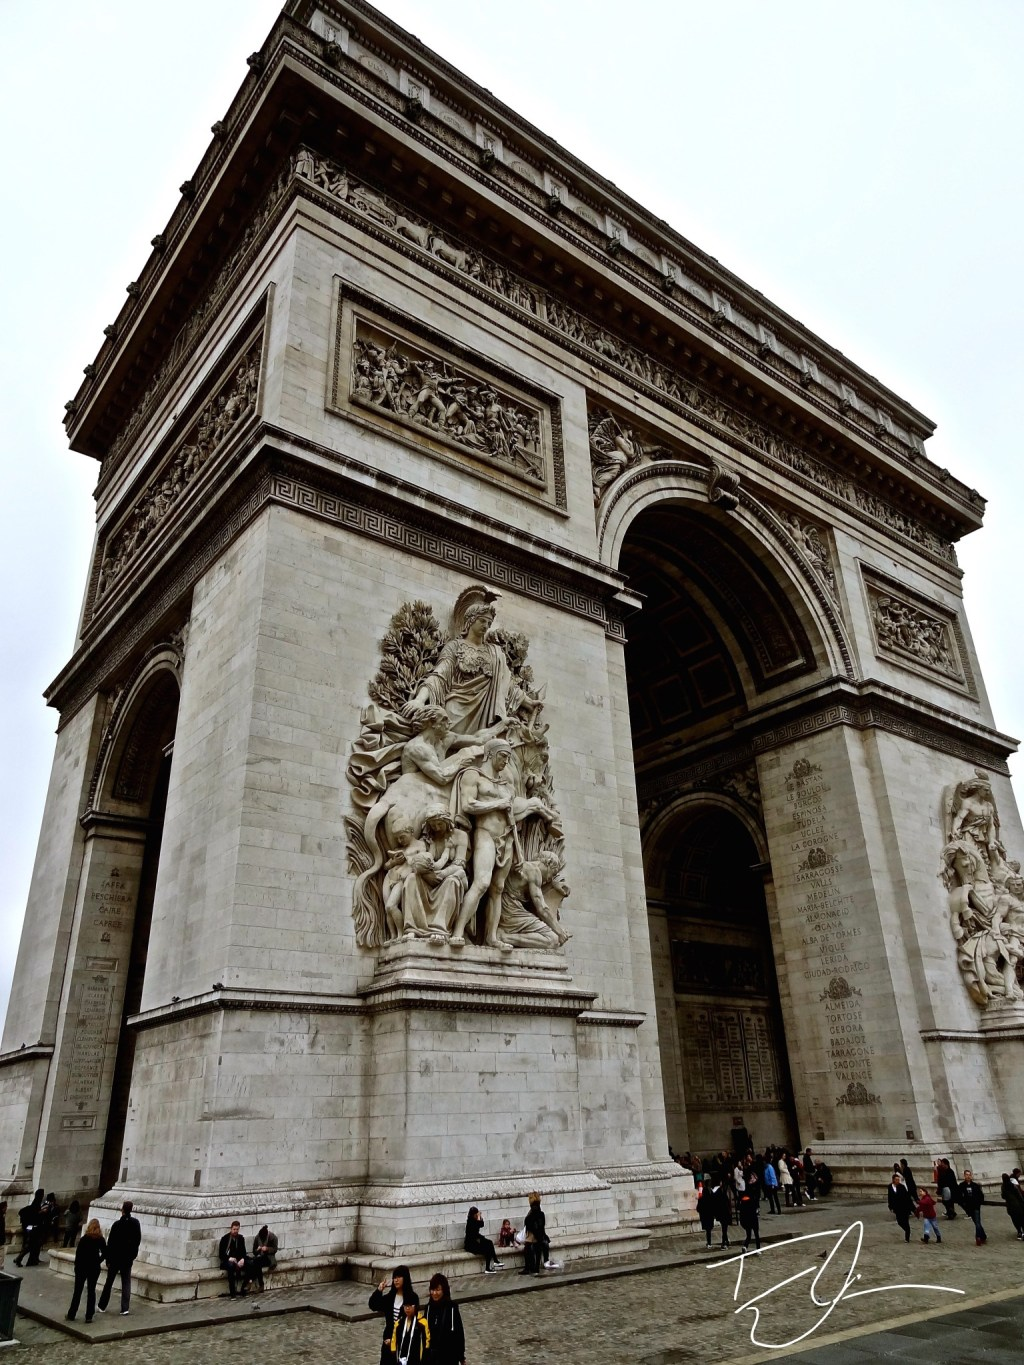 Looking up at the Arc de Triomph in Paris, France